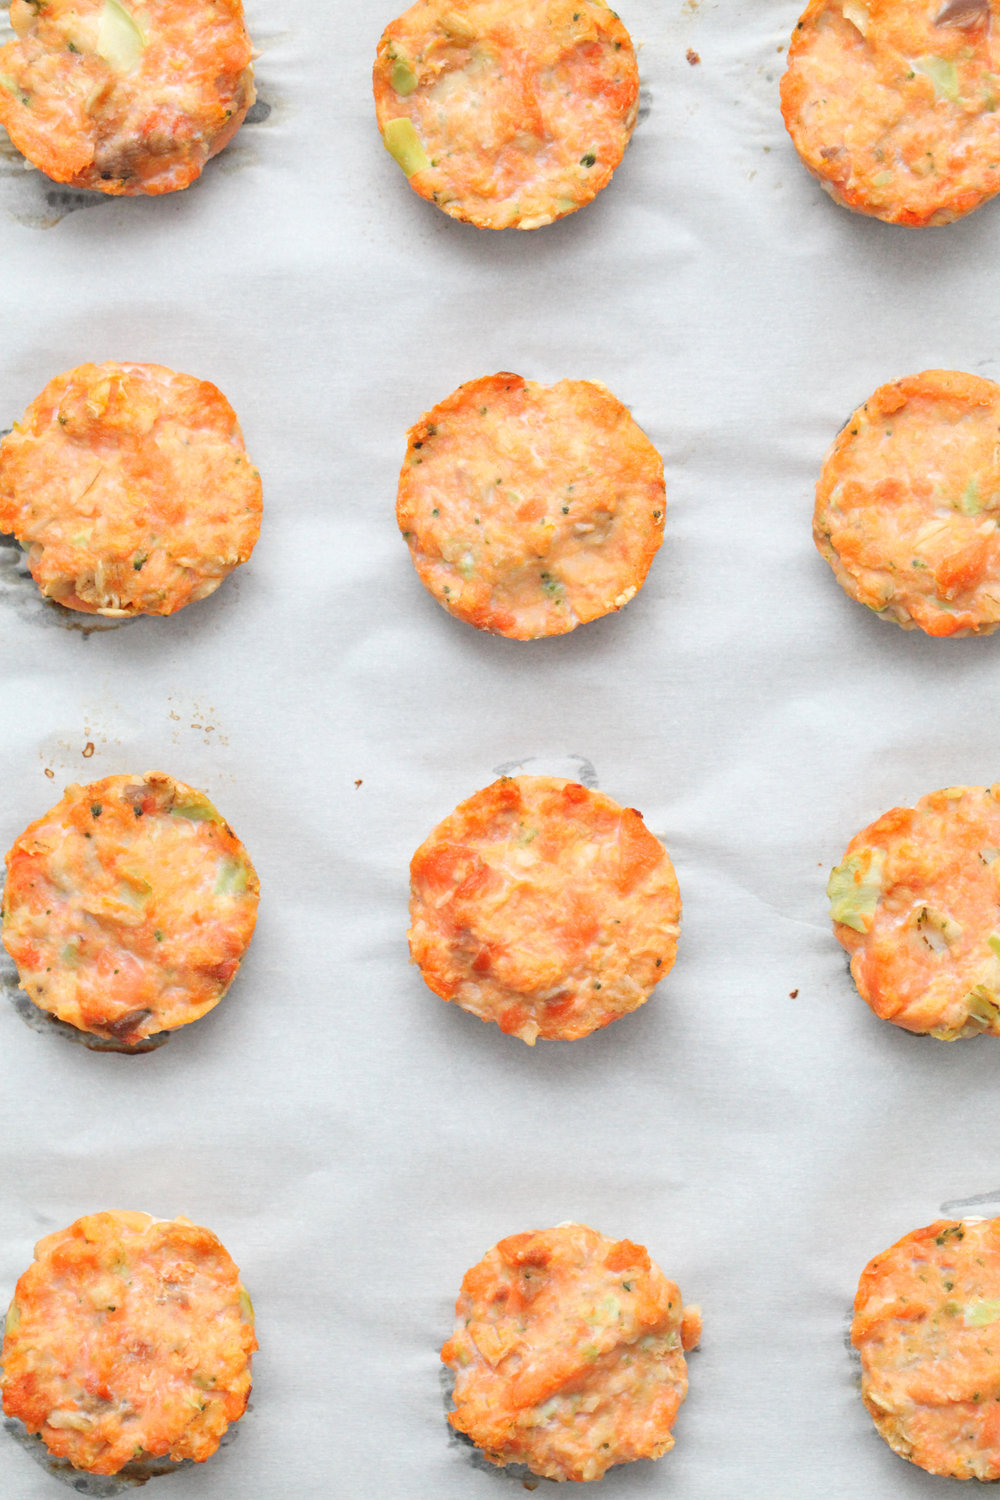 Photo Credit - Lauren Lear Photography Salmon Bites - Baking Sheet2.jpg